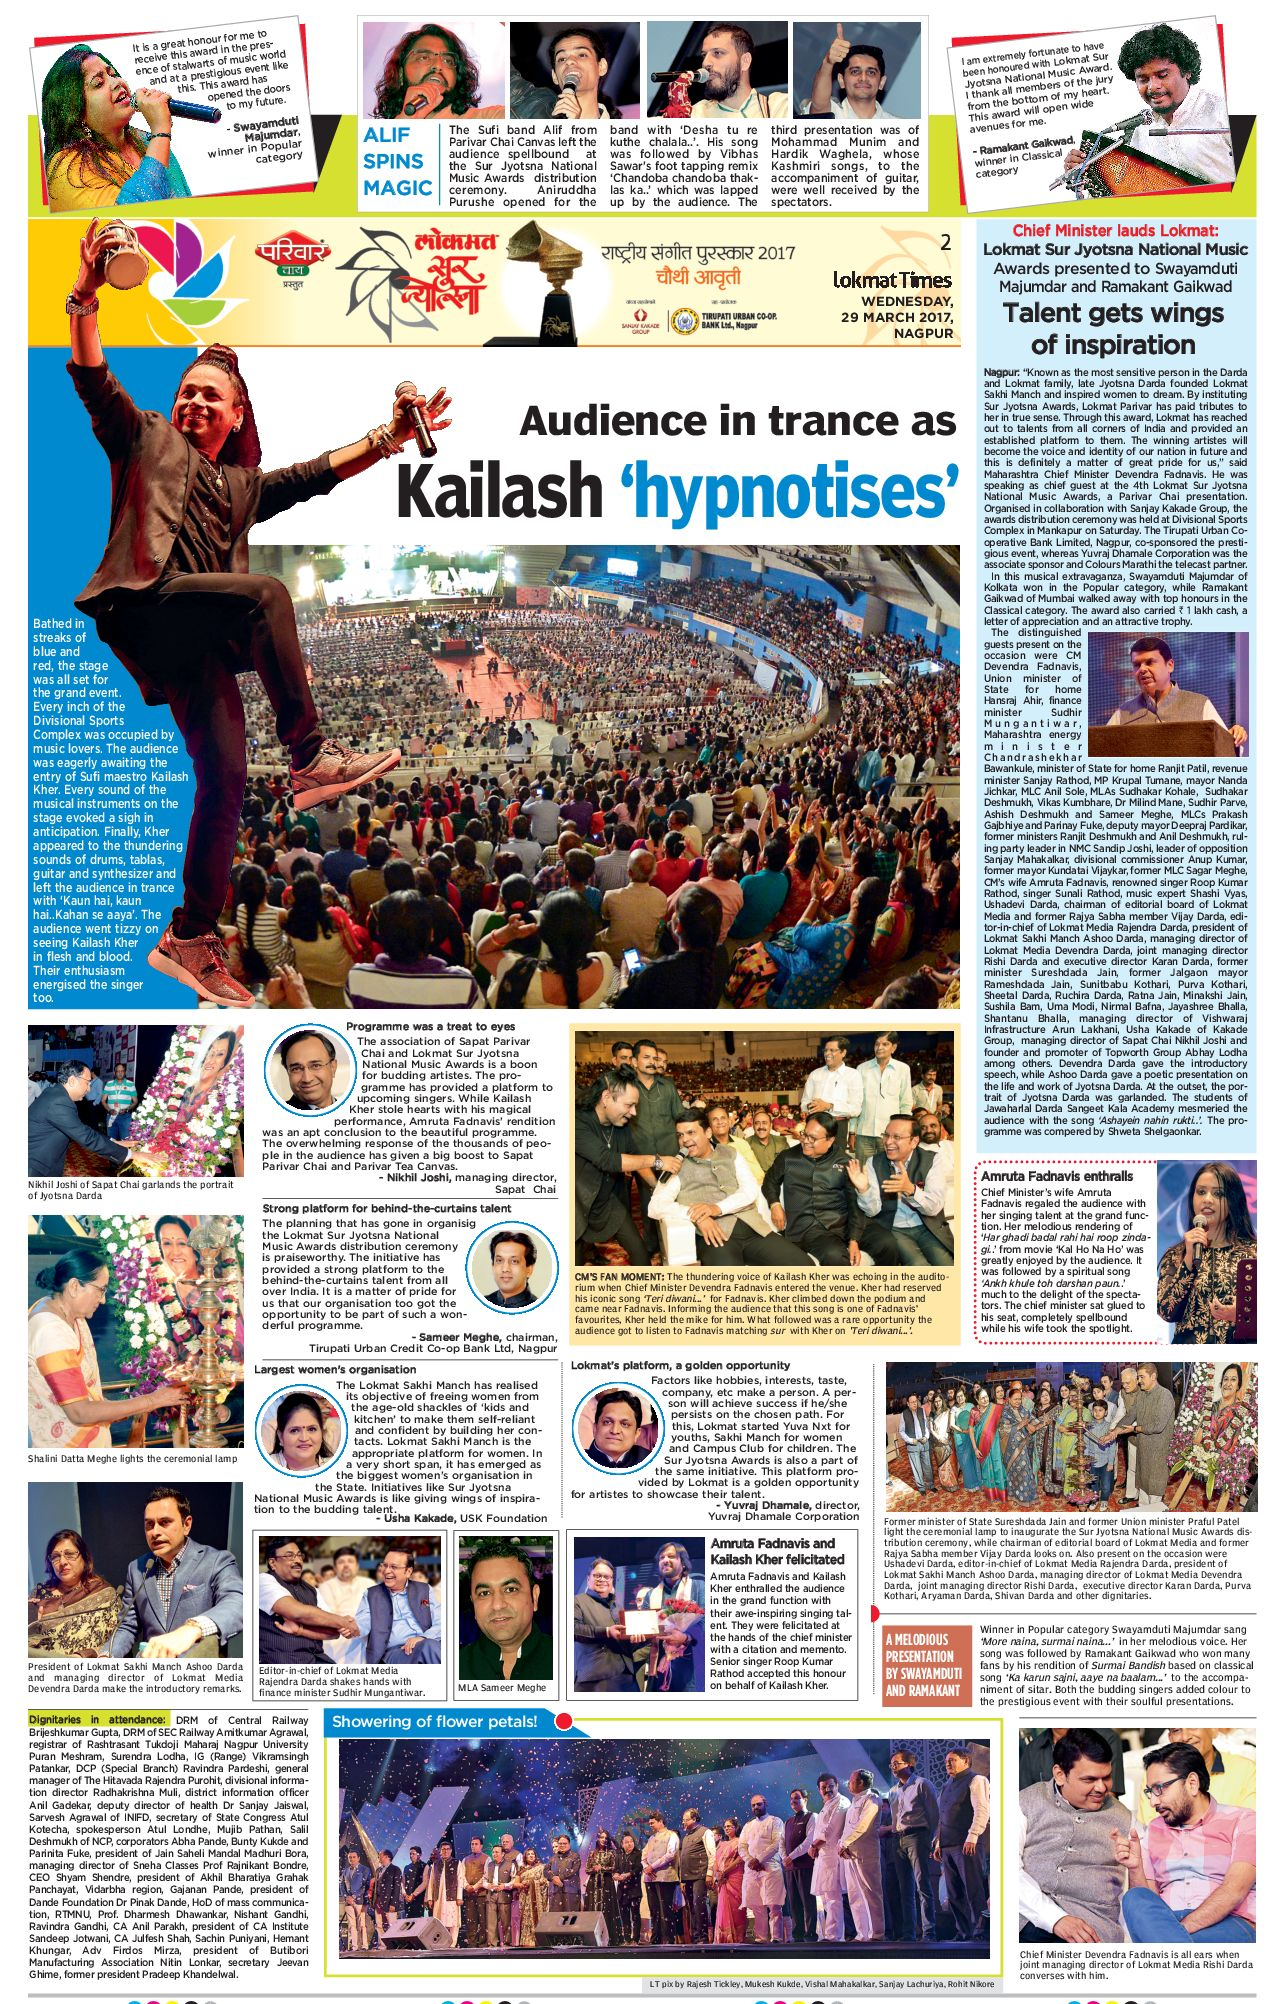 Audience in trance as Kailash 'hypnotises'